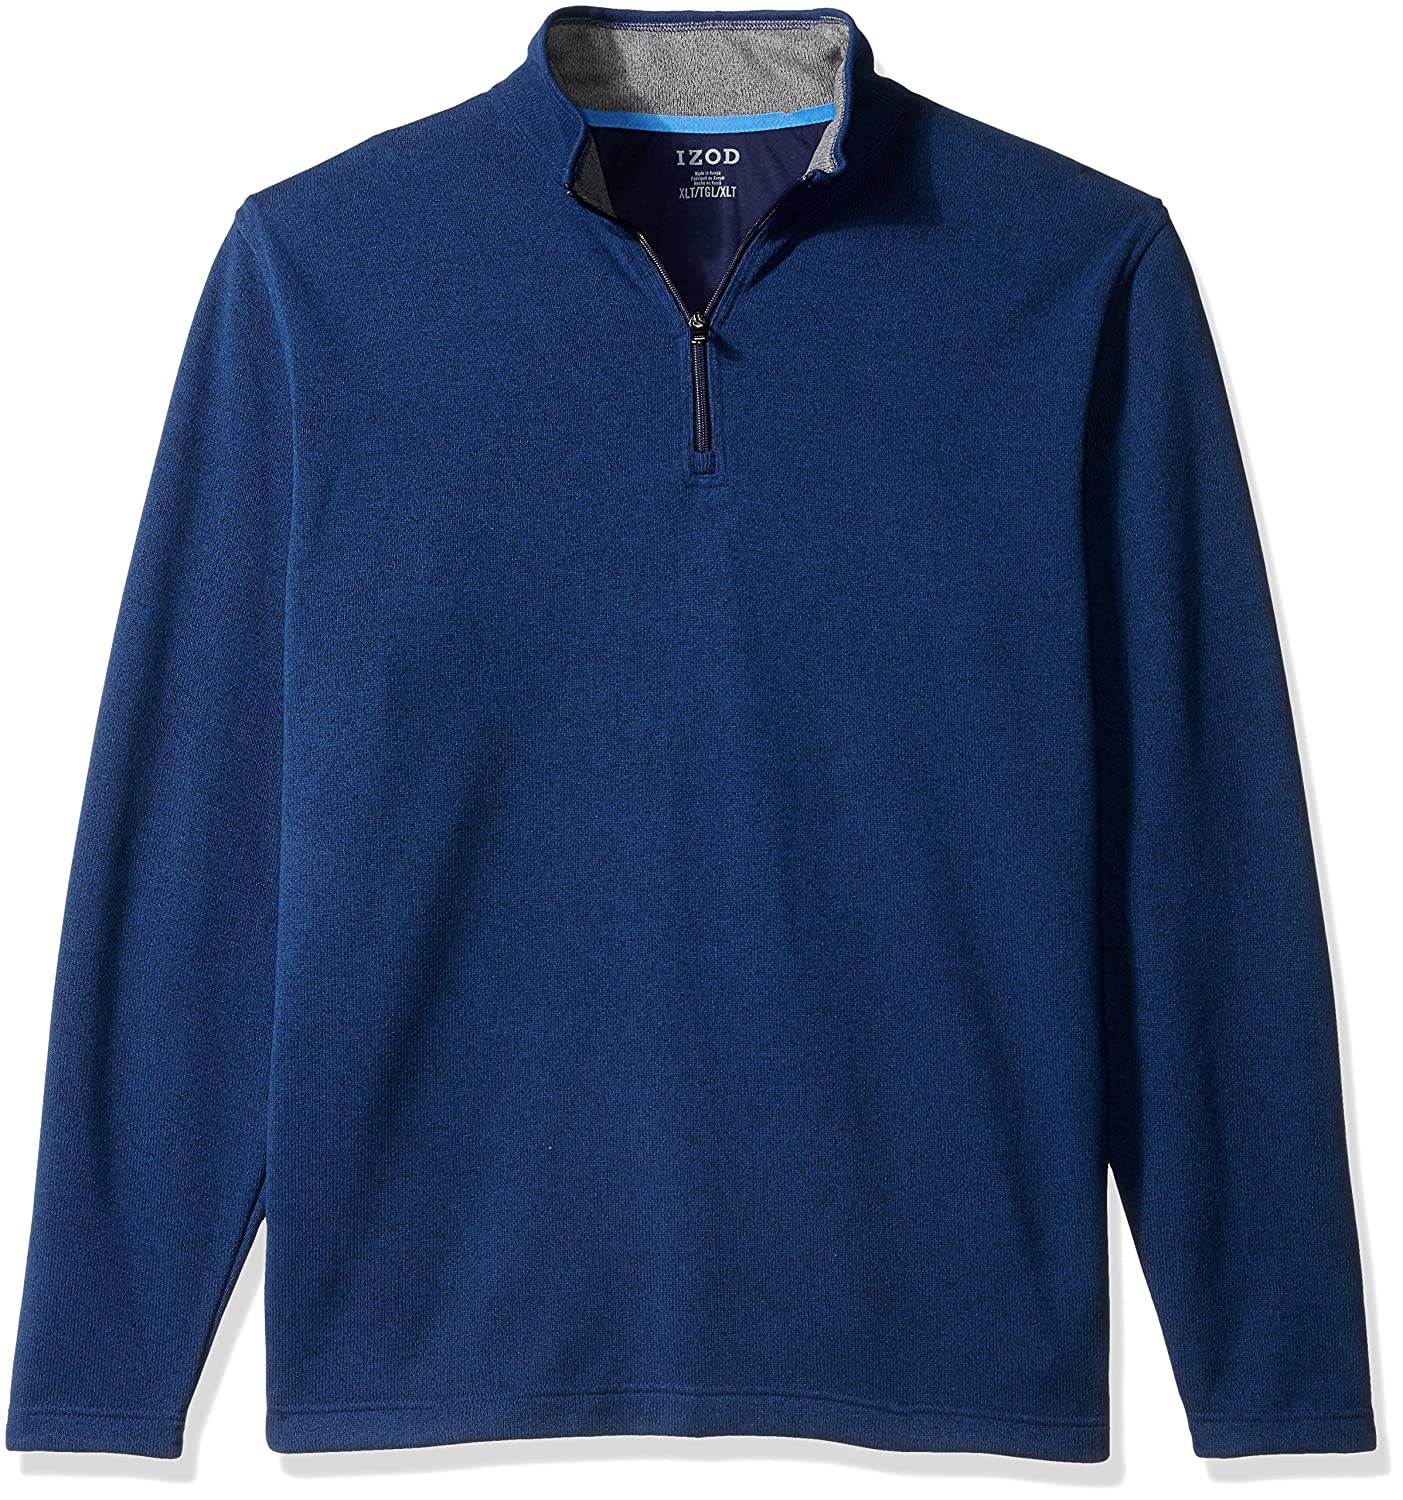 IZOD Men's Big and Tall Saltwater Solid 1/4 Zip Sweater IZOD Men's Sportswear